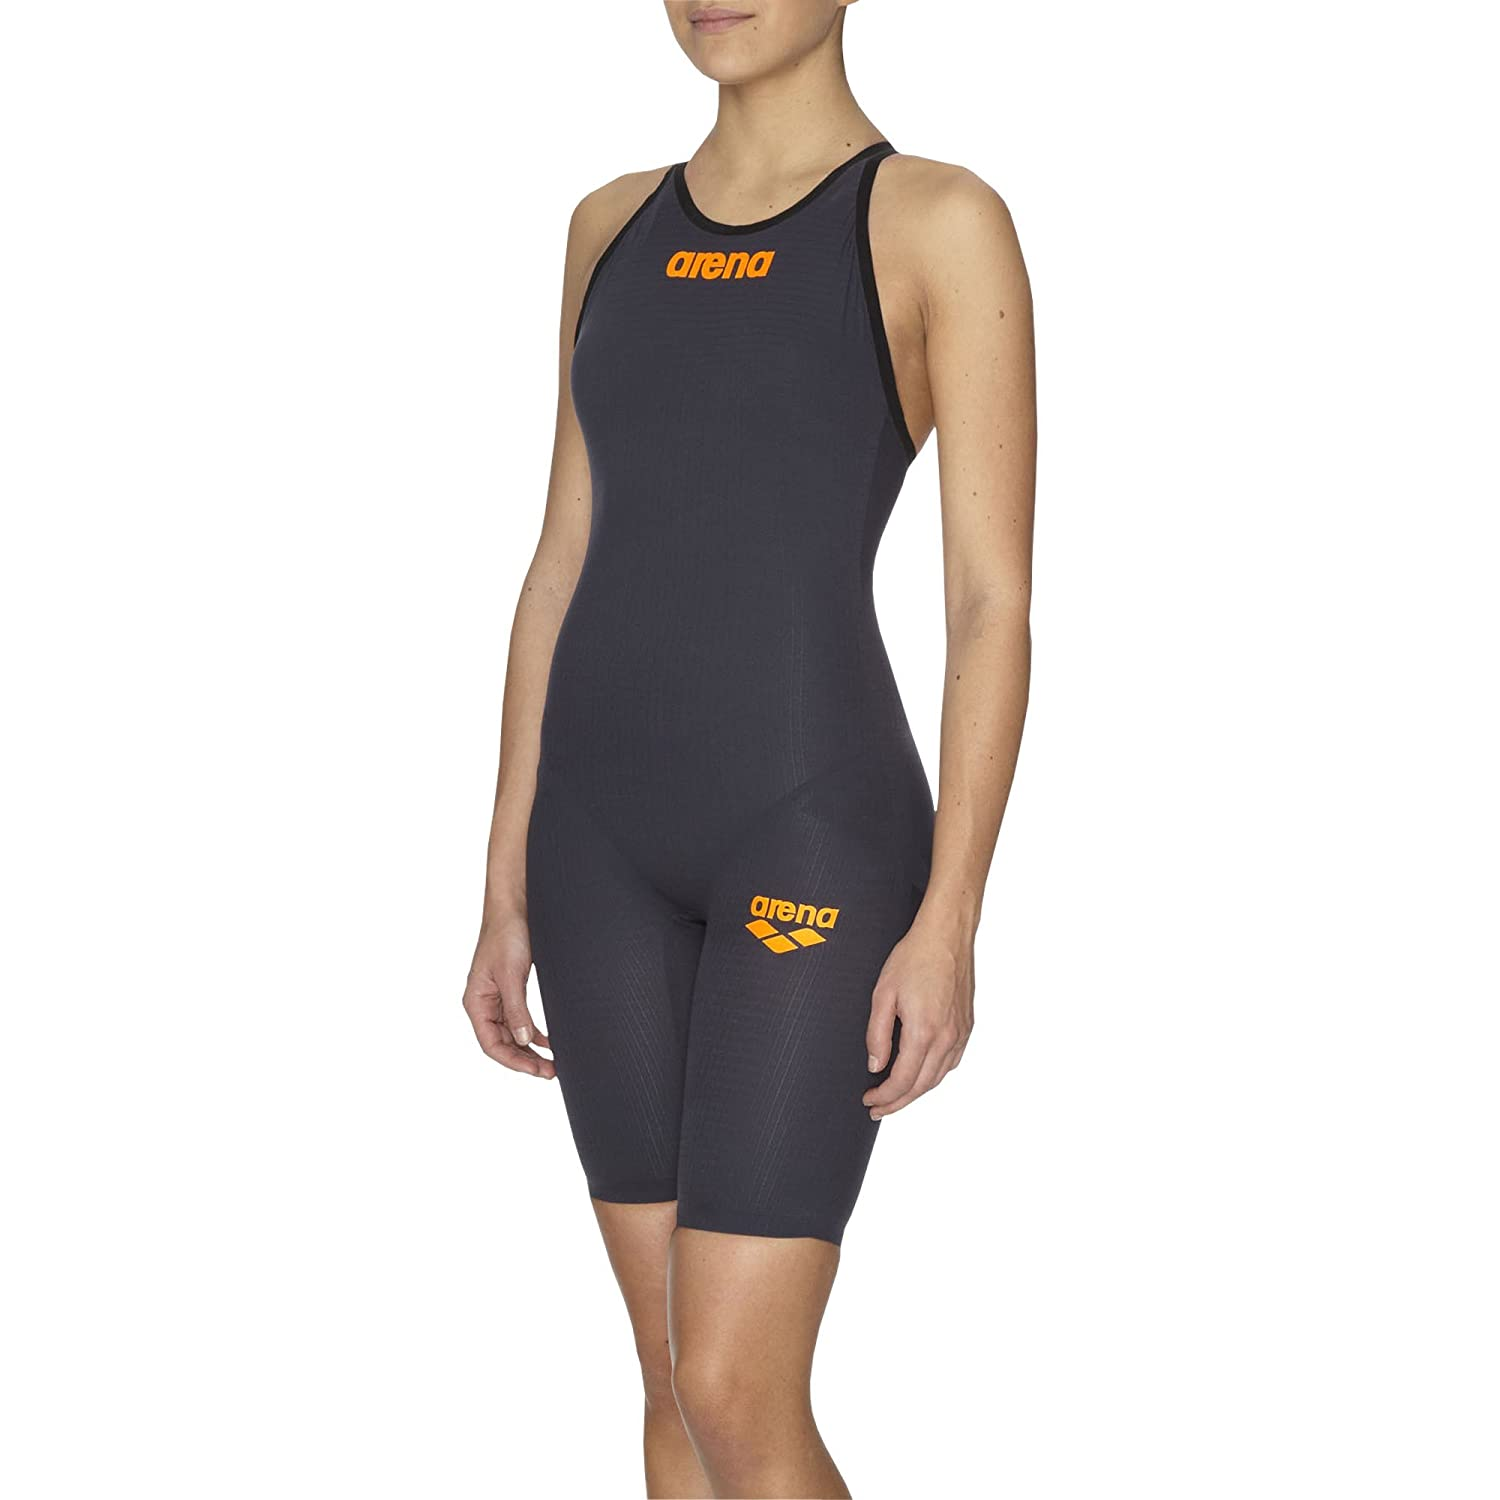 Arena W pwsk Carbon Pro MK2 fbslc costume donna 86176